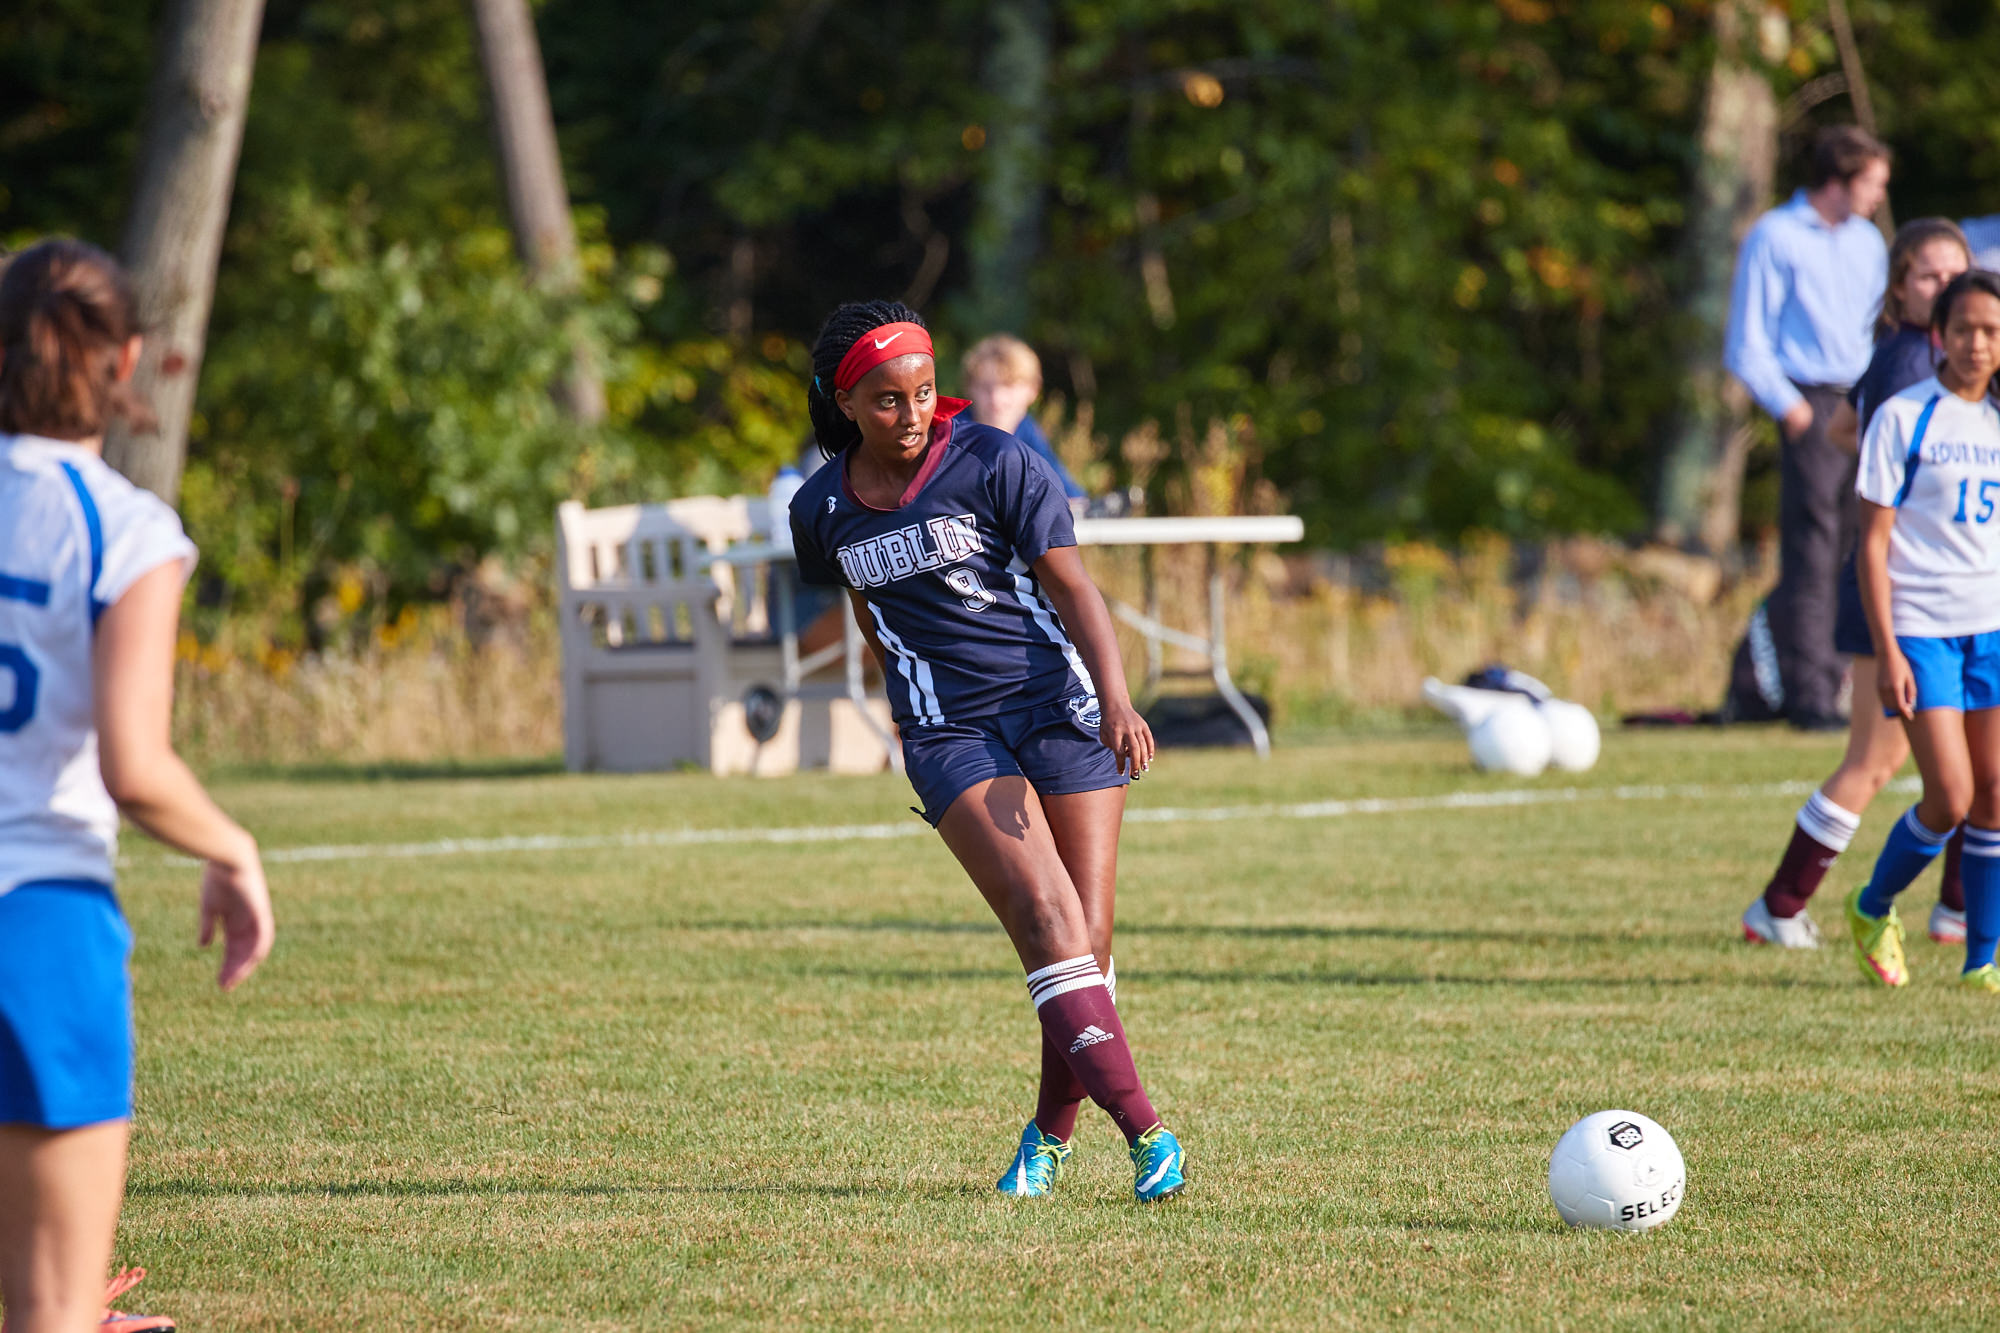 Girls Varsity Soccer vs. Four Rivers Charter Public School - September 23, 2016 - 41438- 000132.jpg